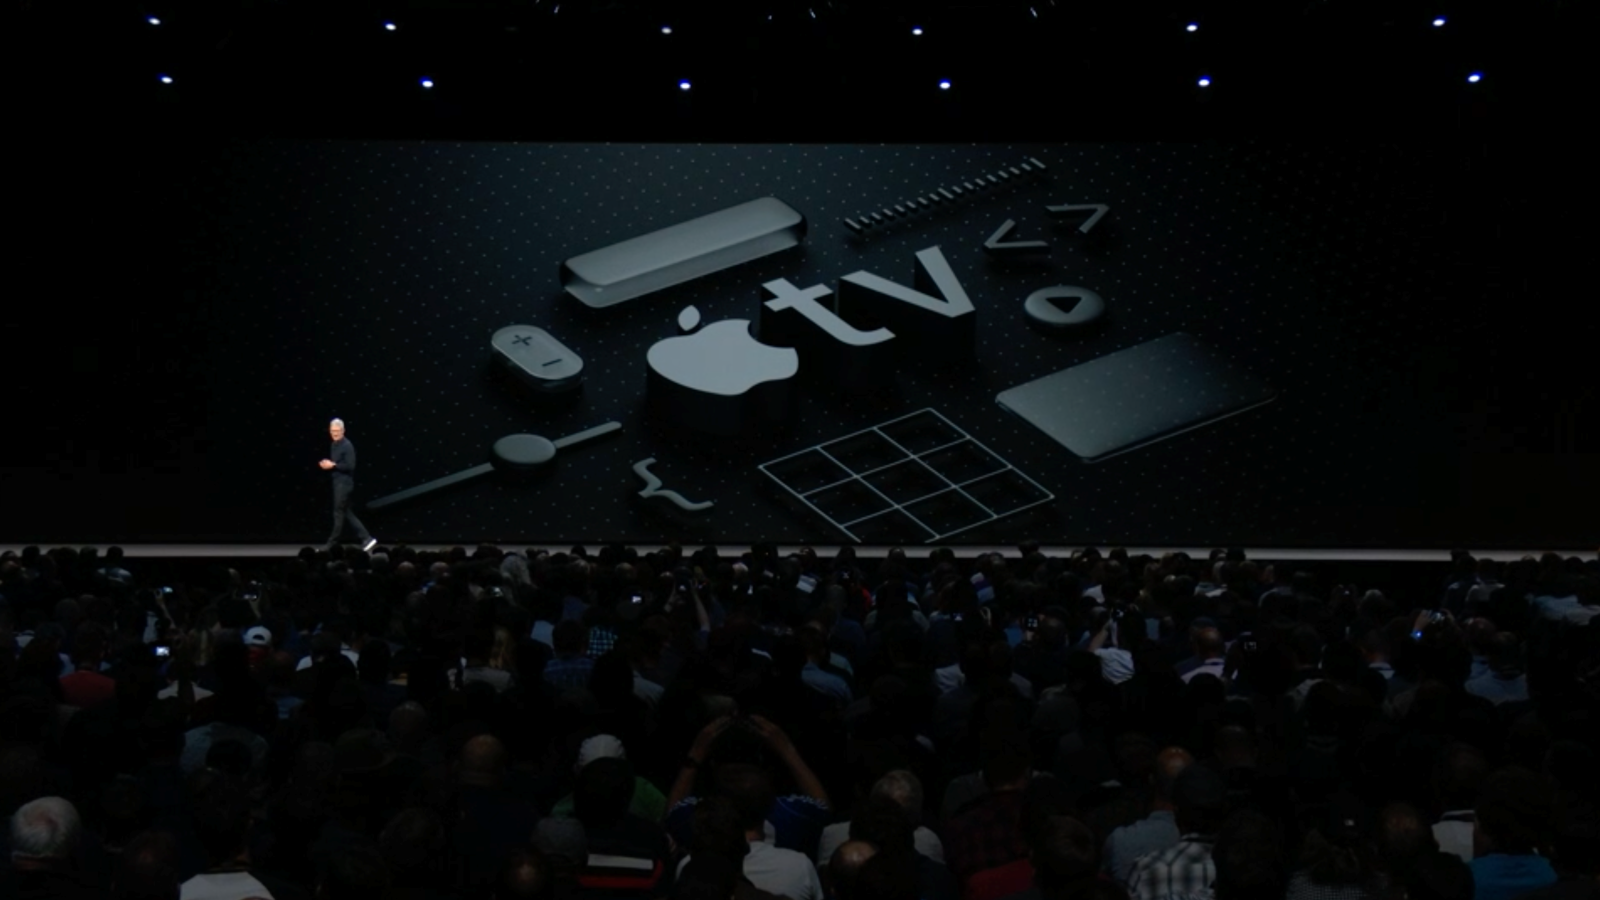 Apple announces tvOS 12 with immersive Dolby Atmos audio